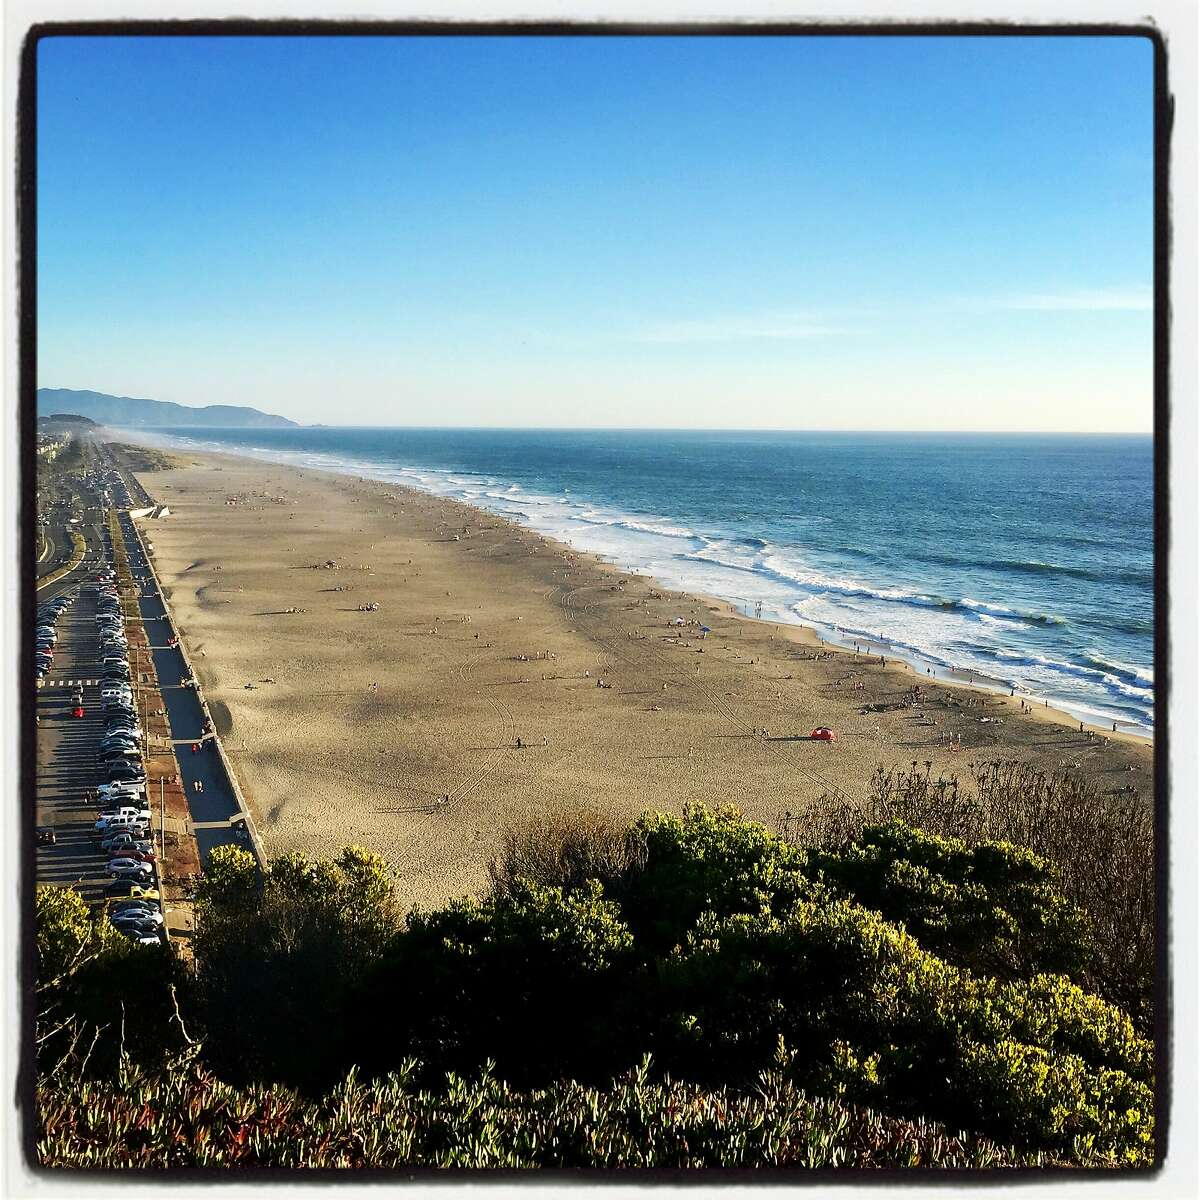 Get some fresh air, amid approved social-distancing space, at Ocean Beach. March 22, 2020.